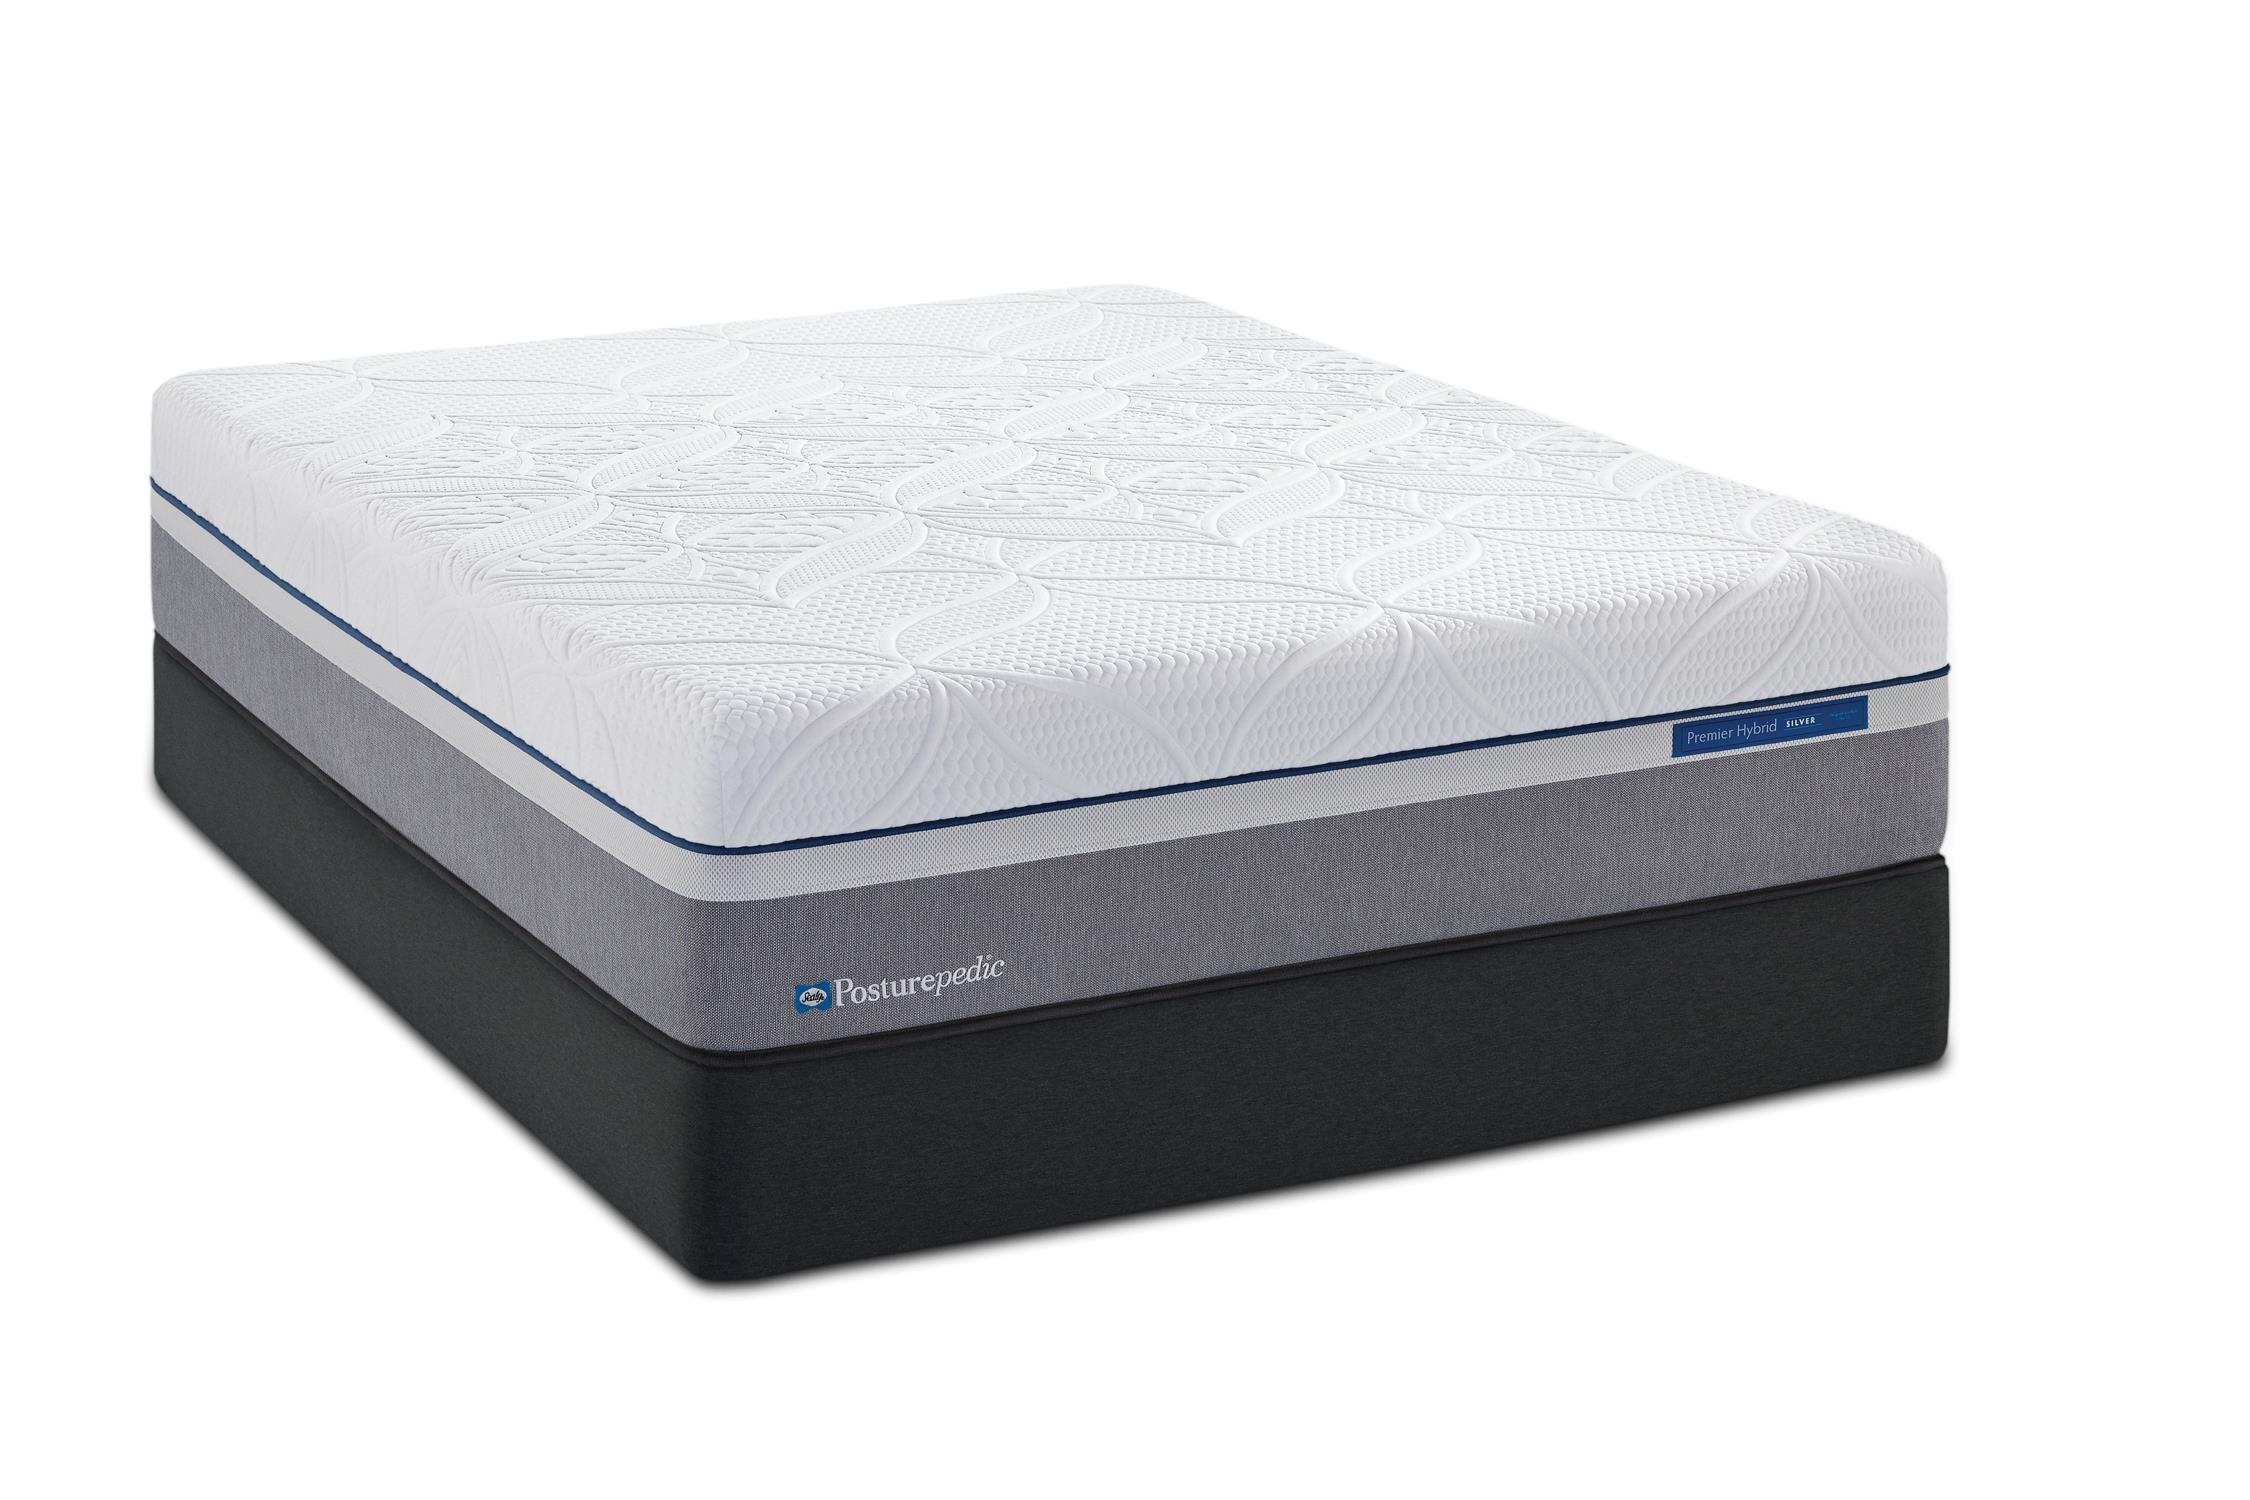 Sealy Silver Plush Full Plush Hybrid Mattress Set - Item Number: PlushHybrid-F+SSfoundation-F